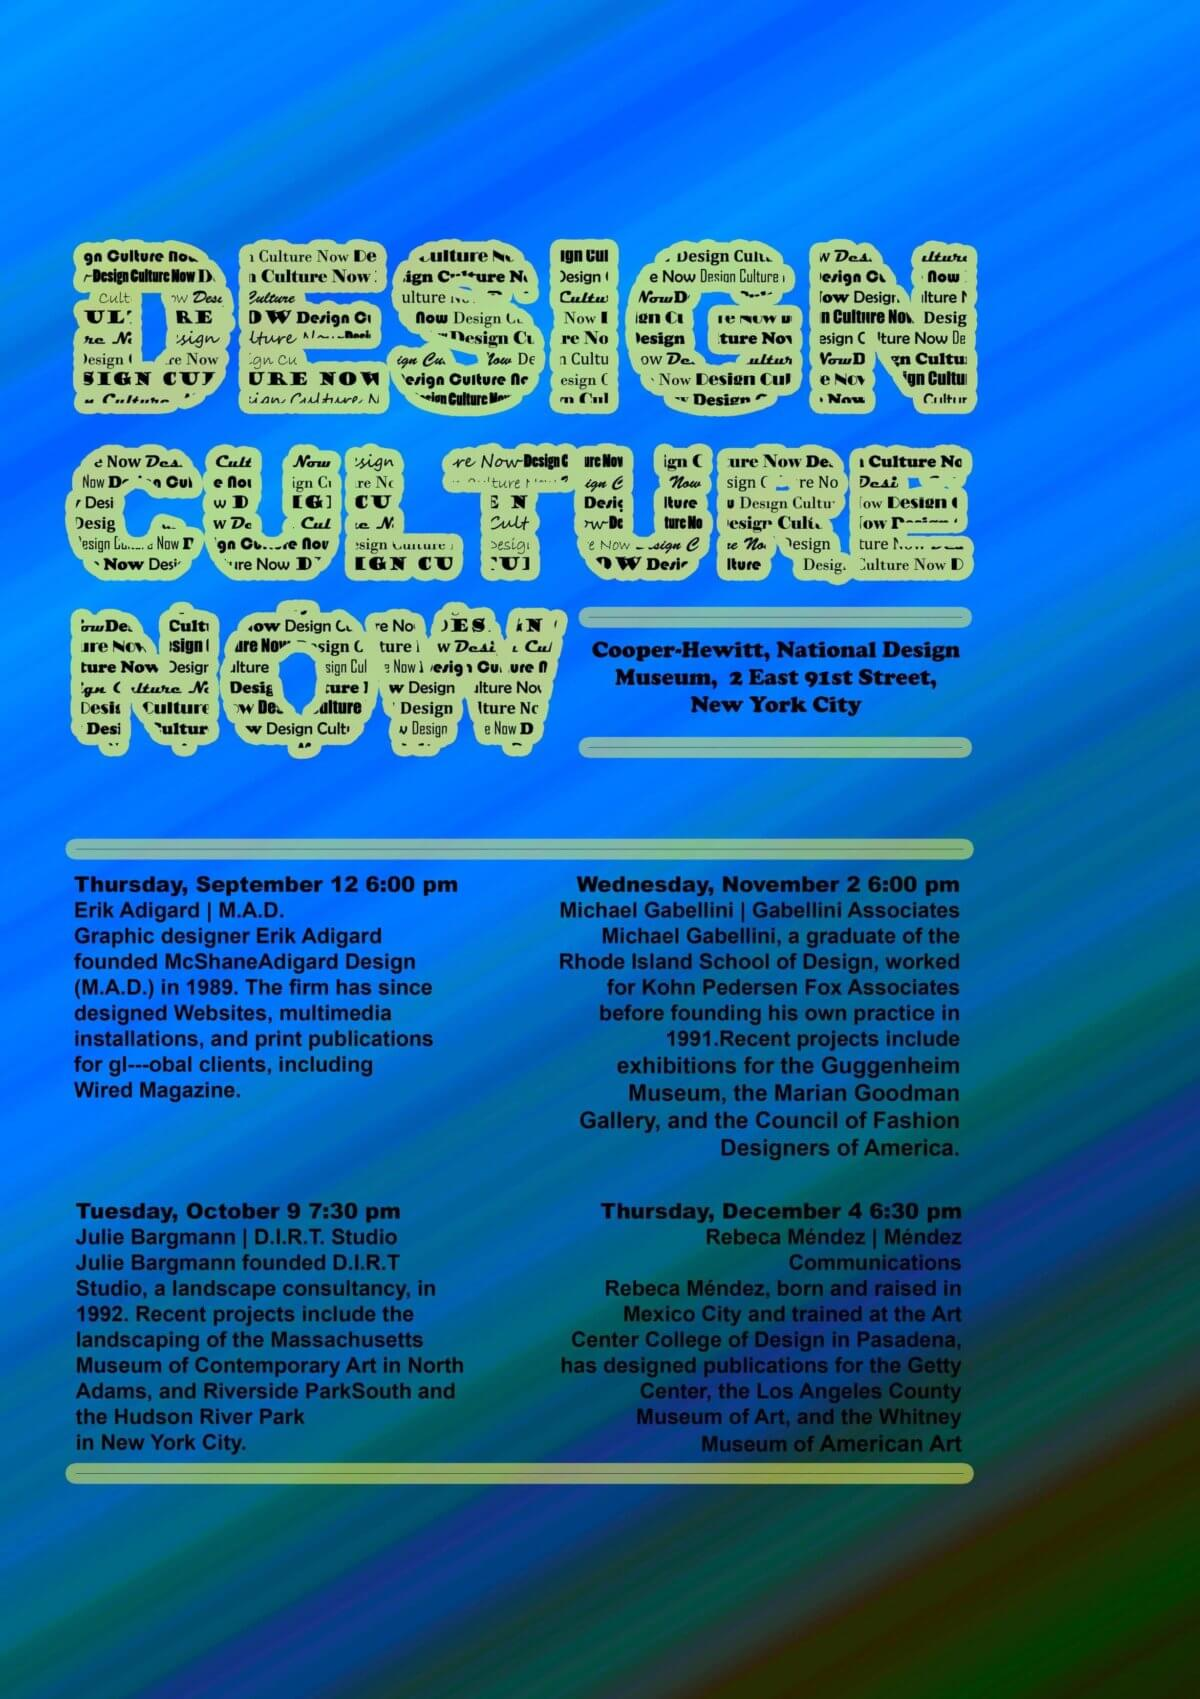 Design Culture Now af multimediedesigner Kevin Aghballe